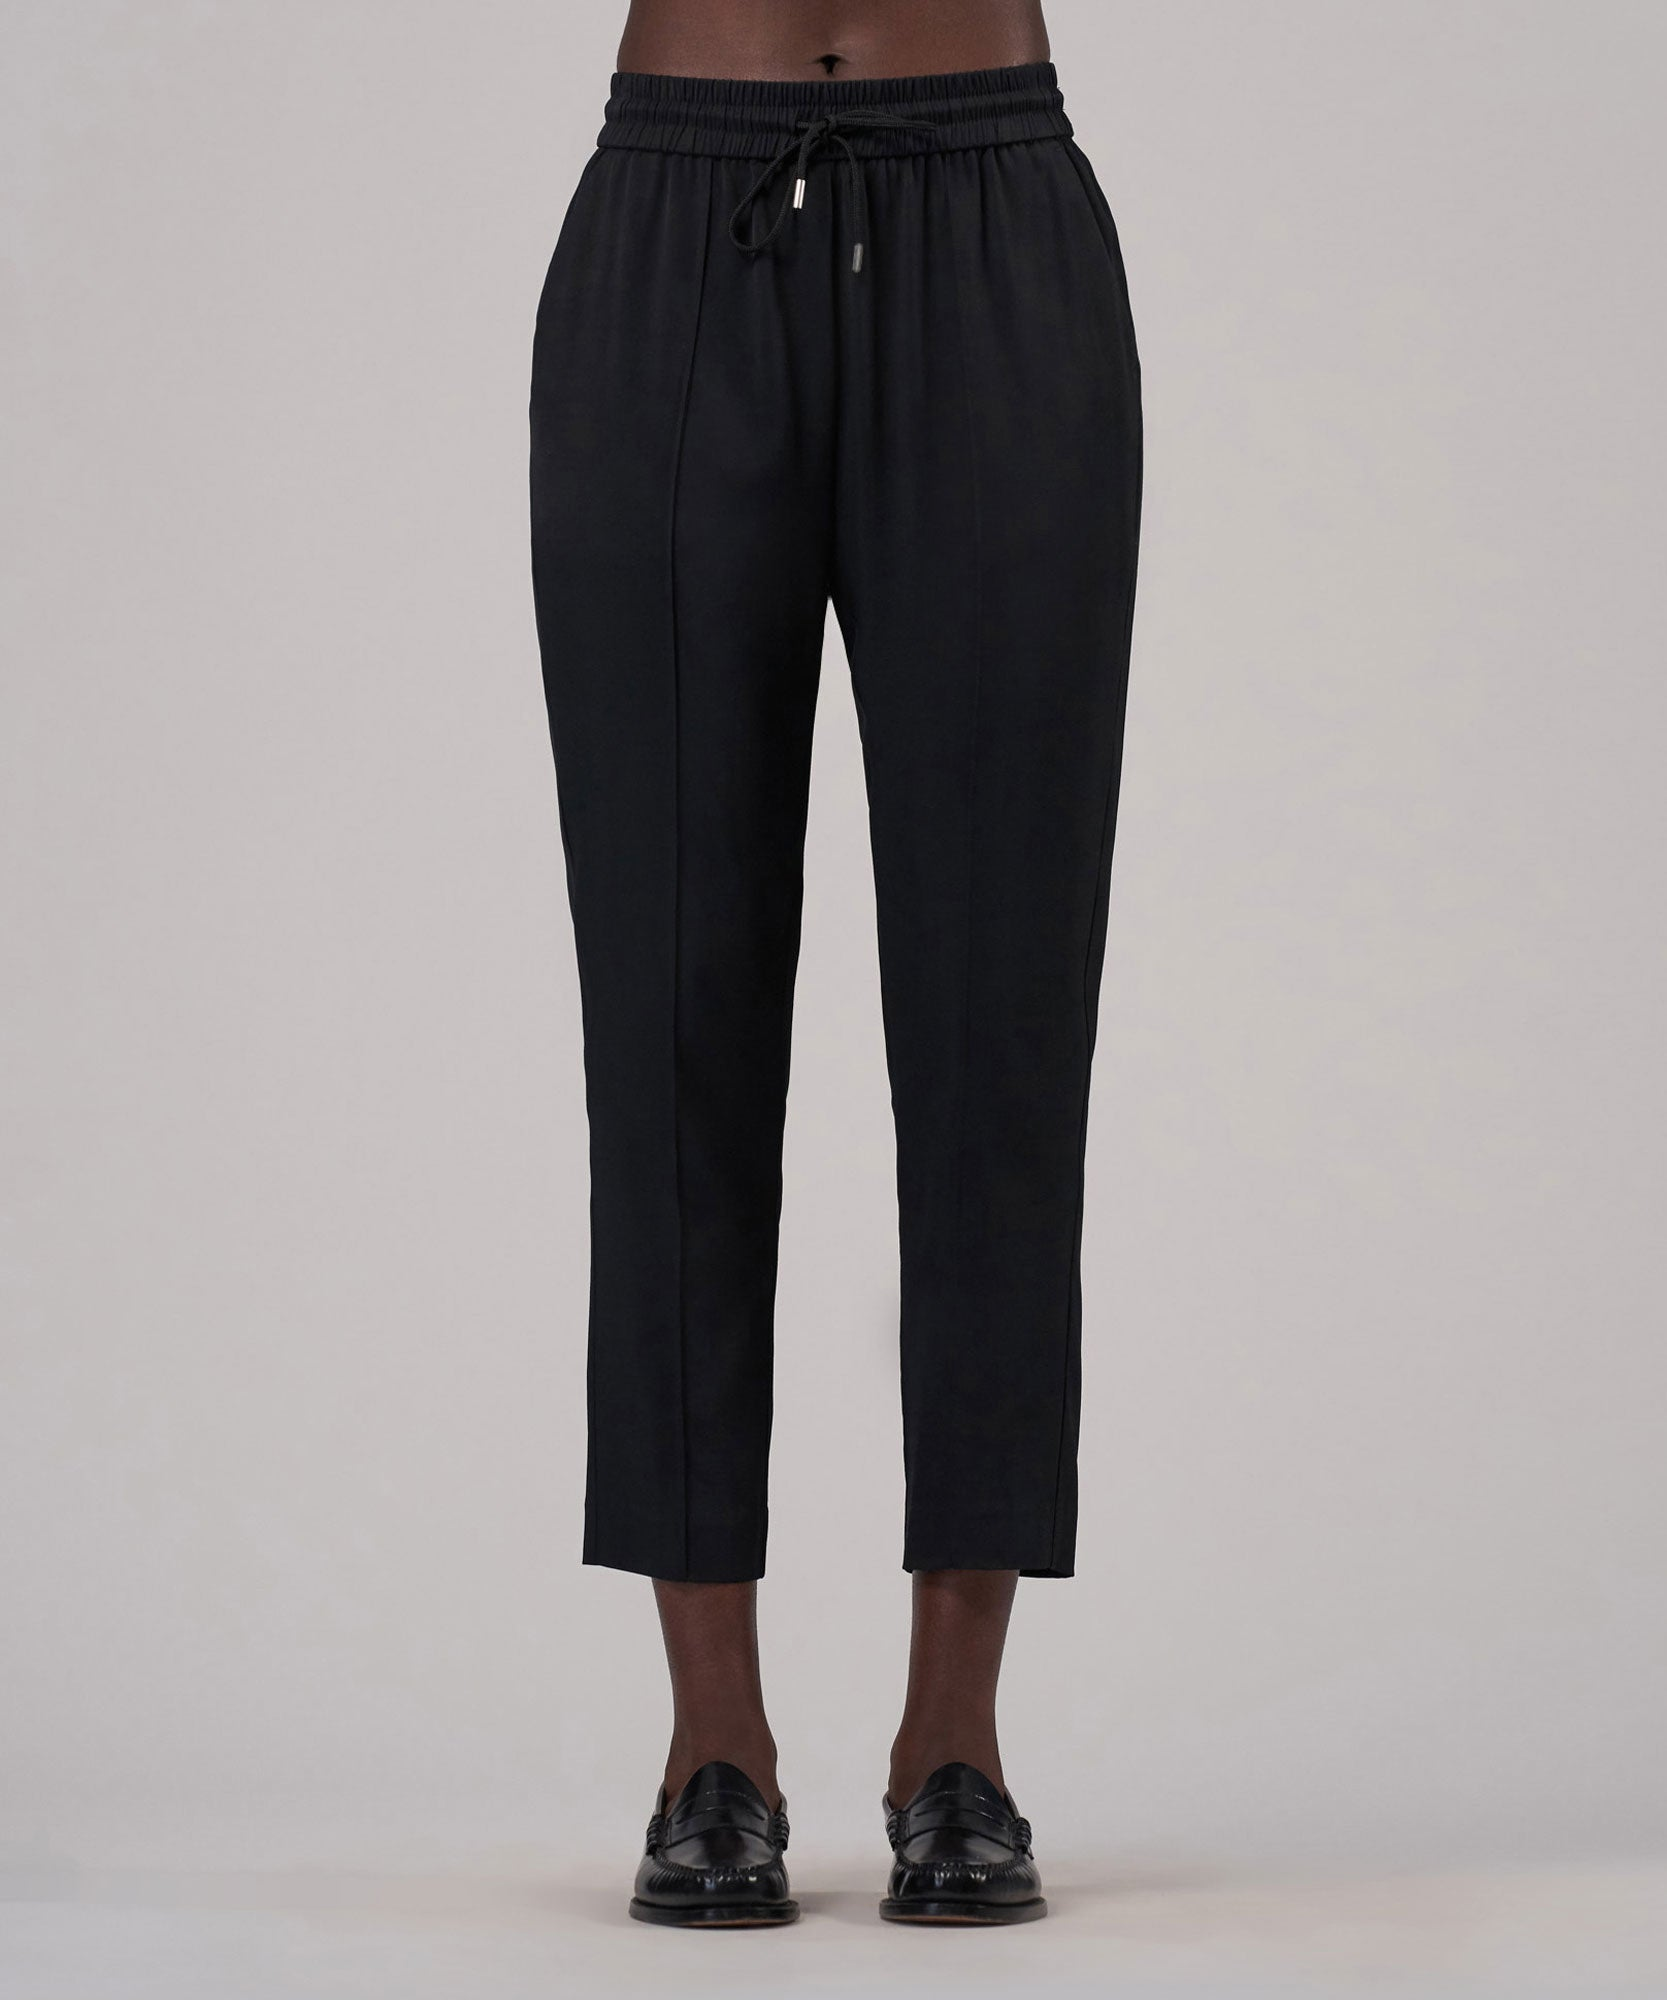 Black Viscose Twill Cropped Pull-On Pants - Women's Luxe Loungewear by ATM Anthony Thomas Melillo